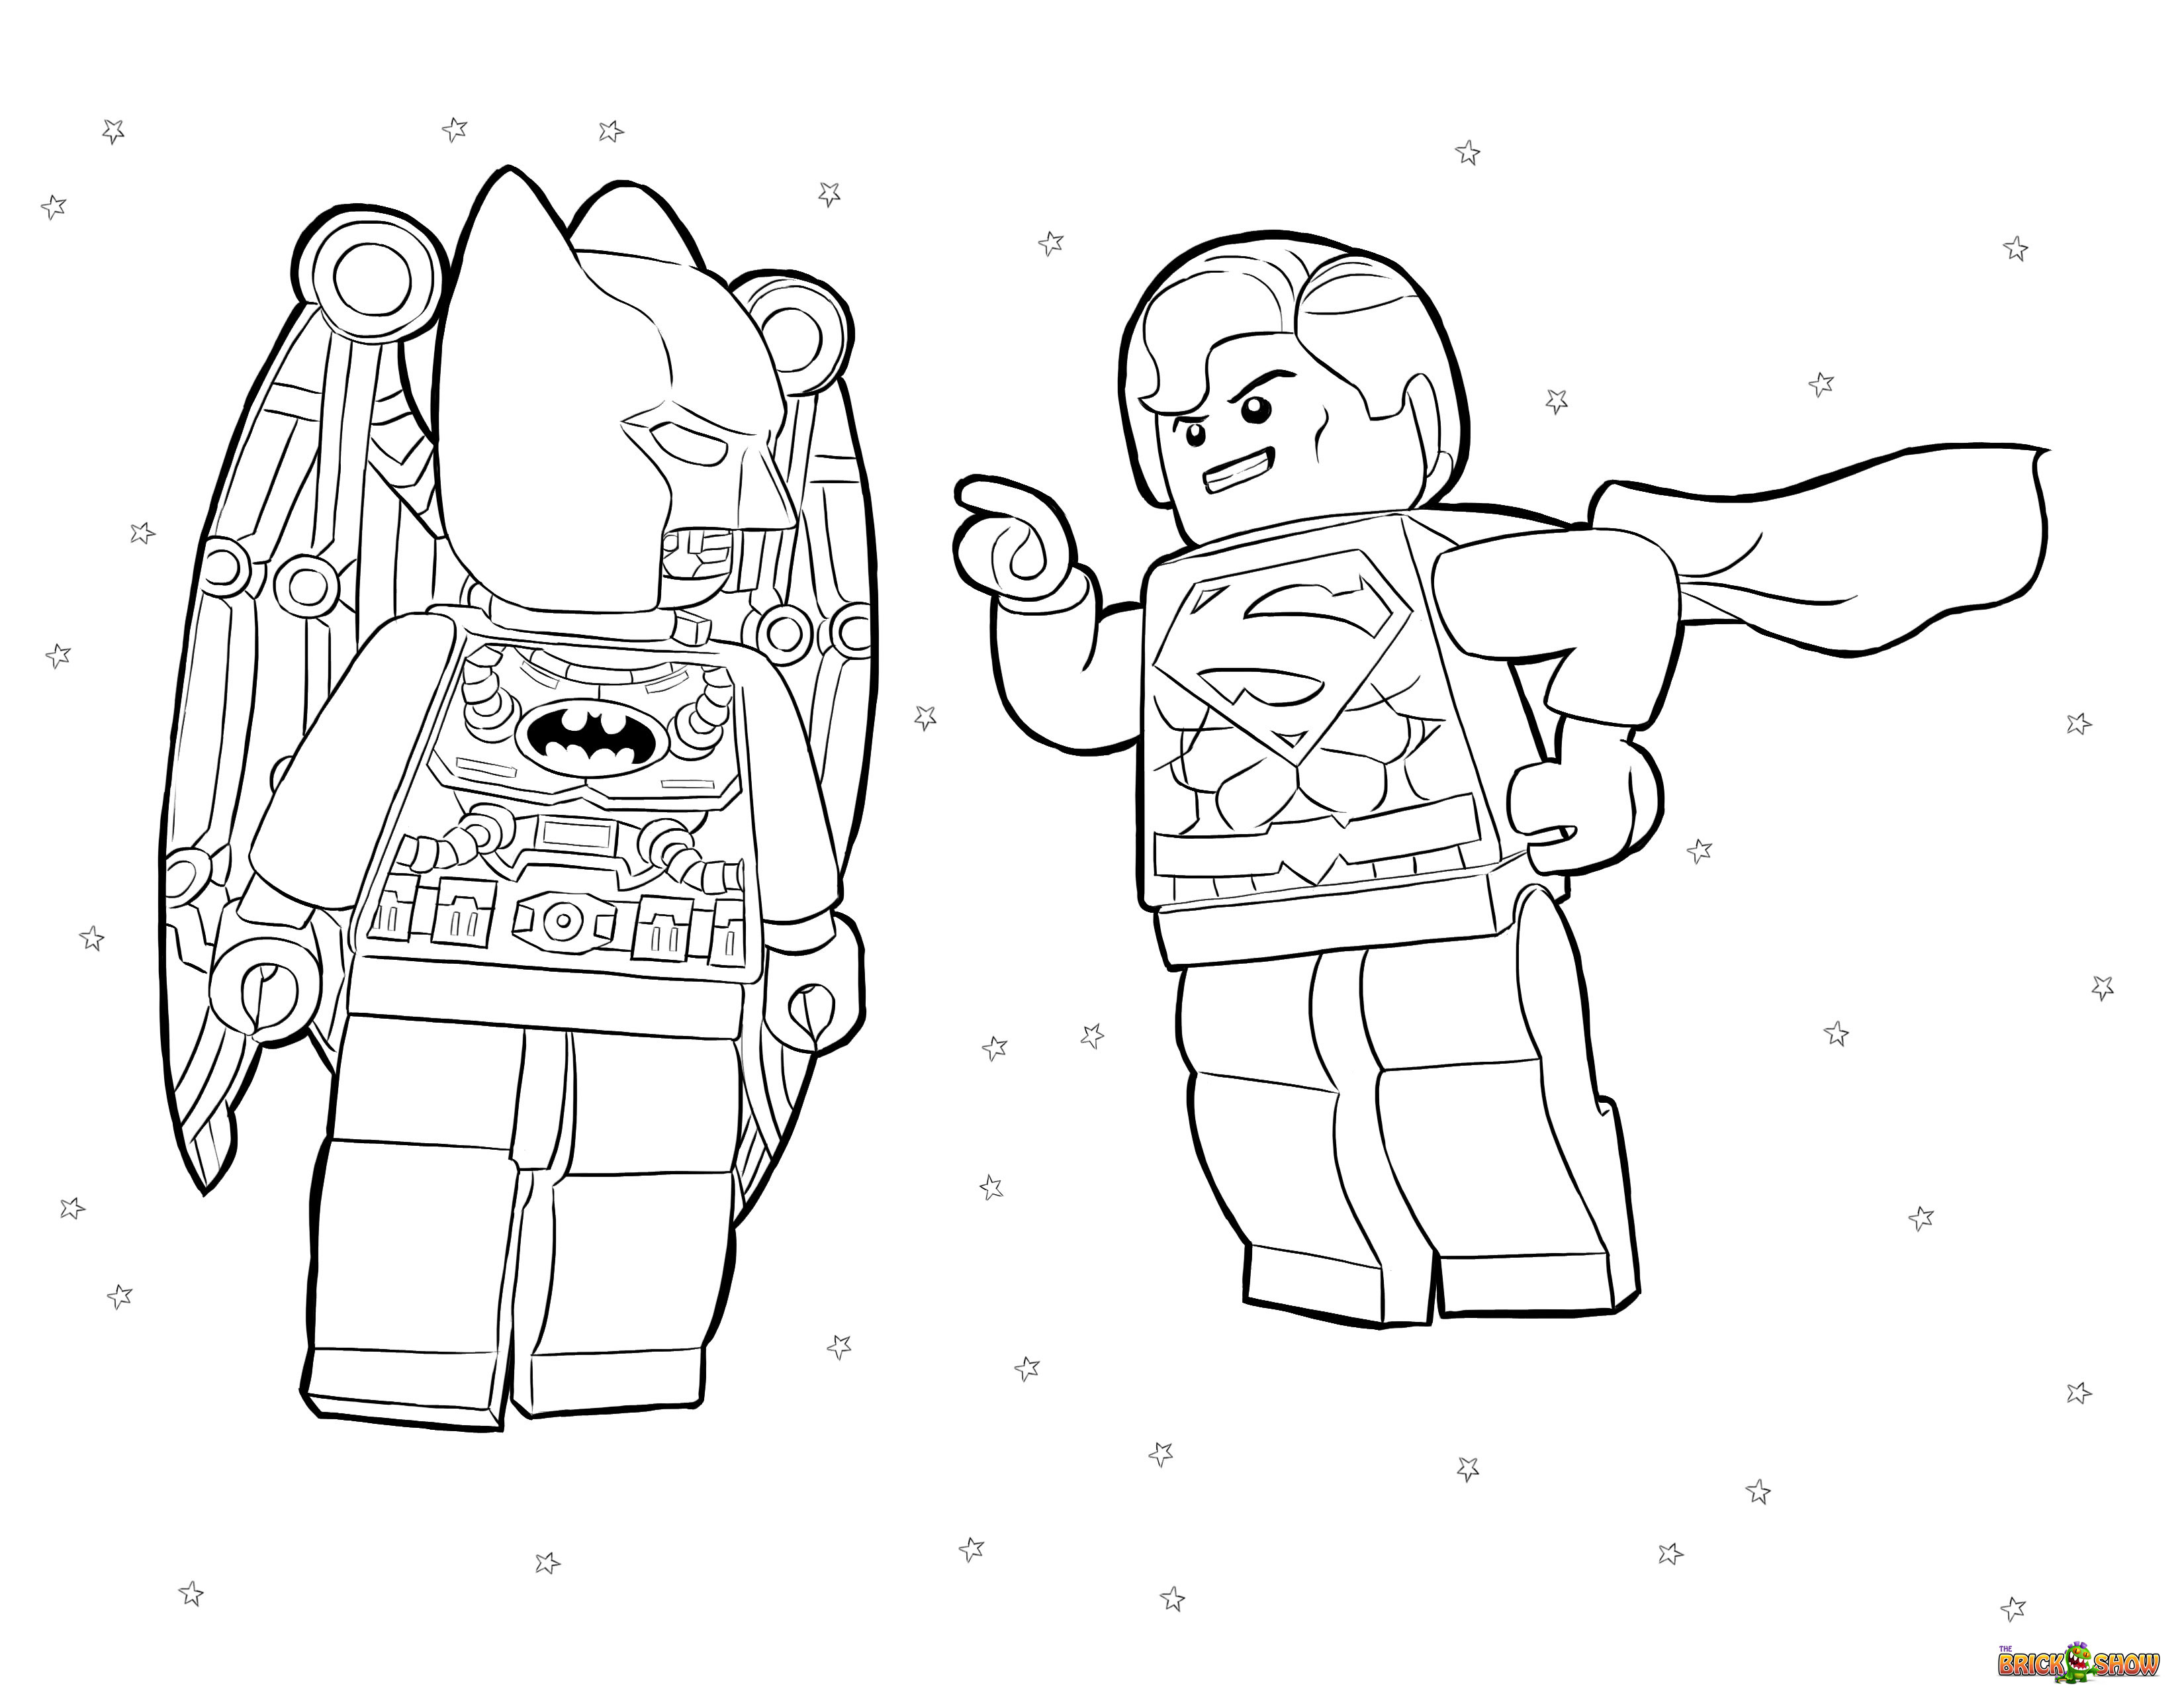 Batman Coloring Pages Lego At Getdrawings Com Free For Personal